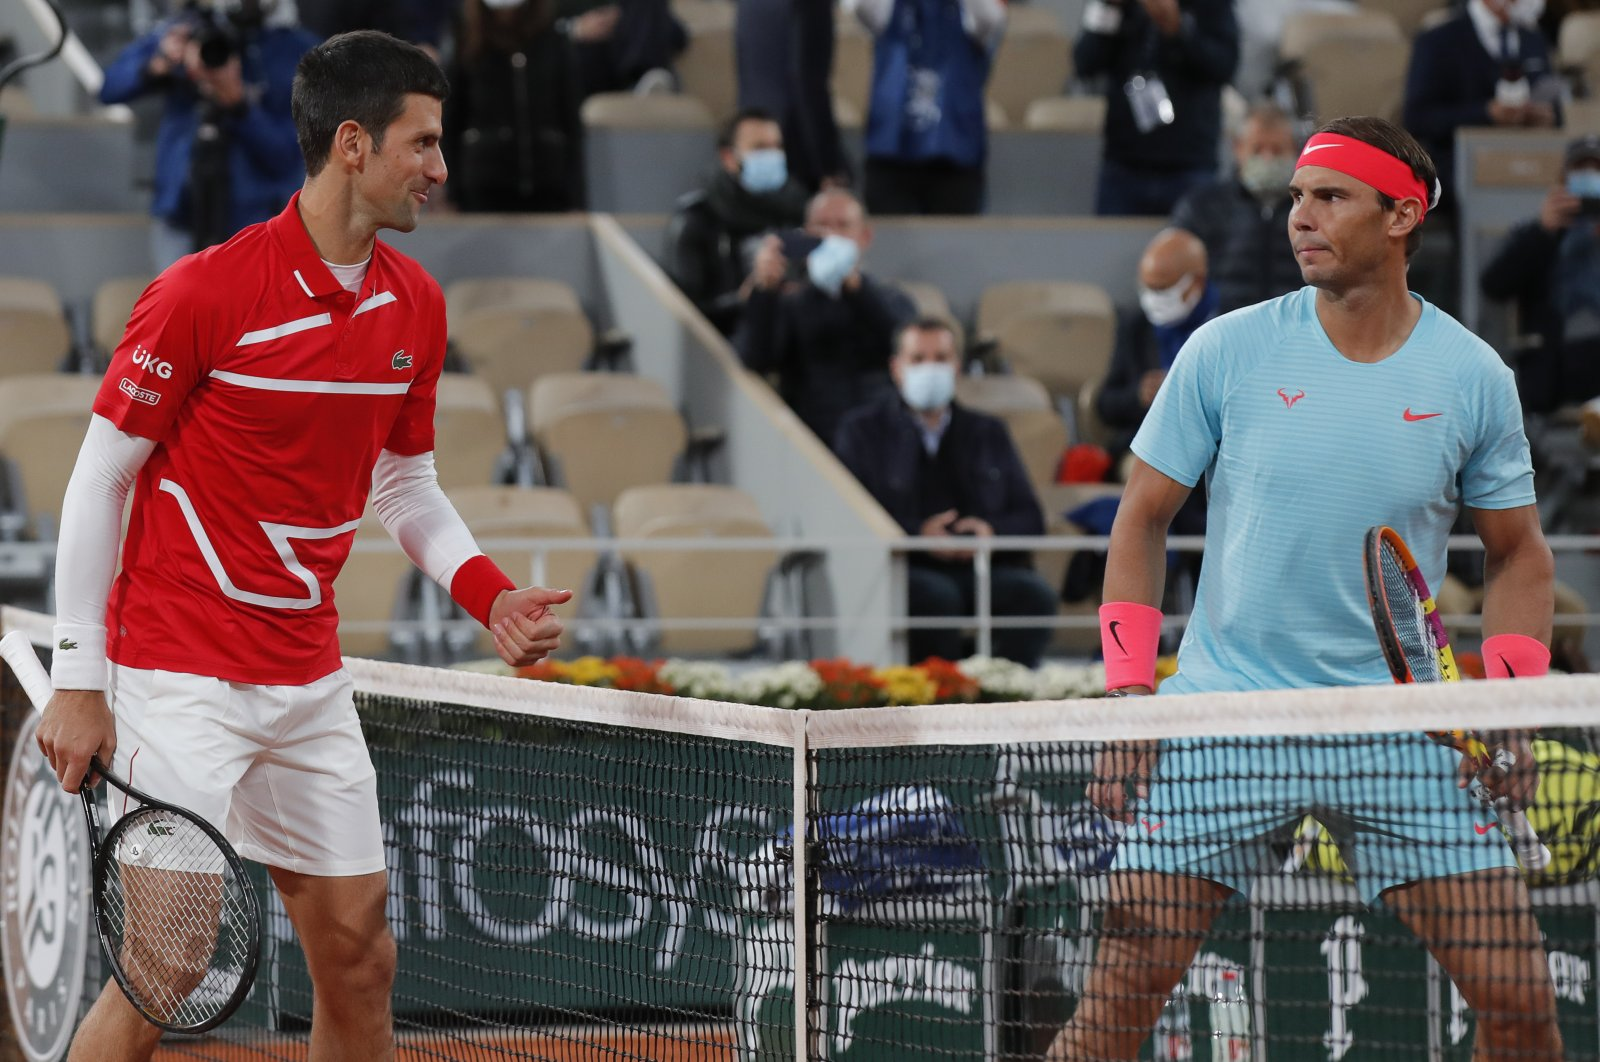 Novak Djokovic (L) and Rafael Nadal look at each other before the final match of the French Open tennis tournament at the Roland Garros stadium in Paris, France, Oct. 11, 2020. (AP Photo)